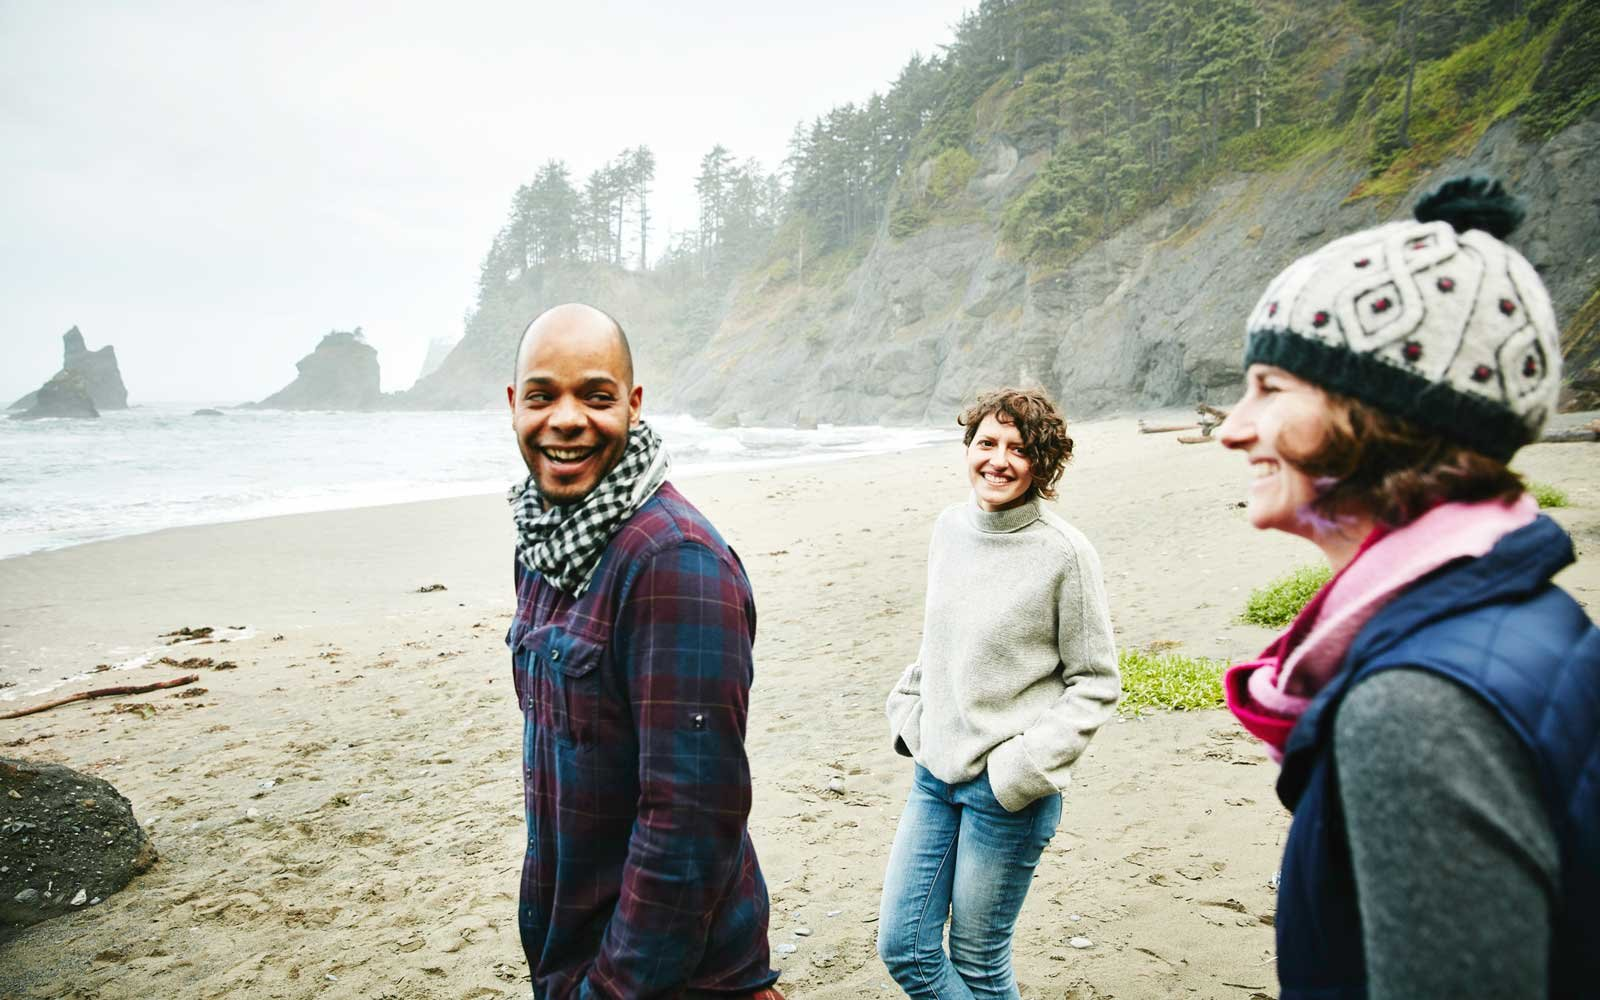 Group of friends exploring remote beach together